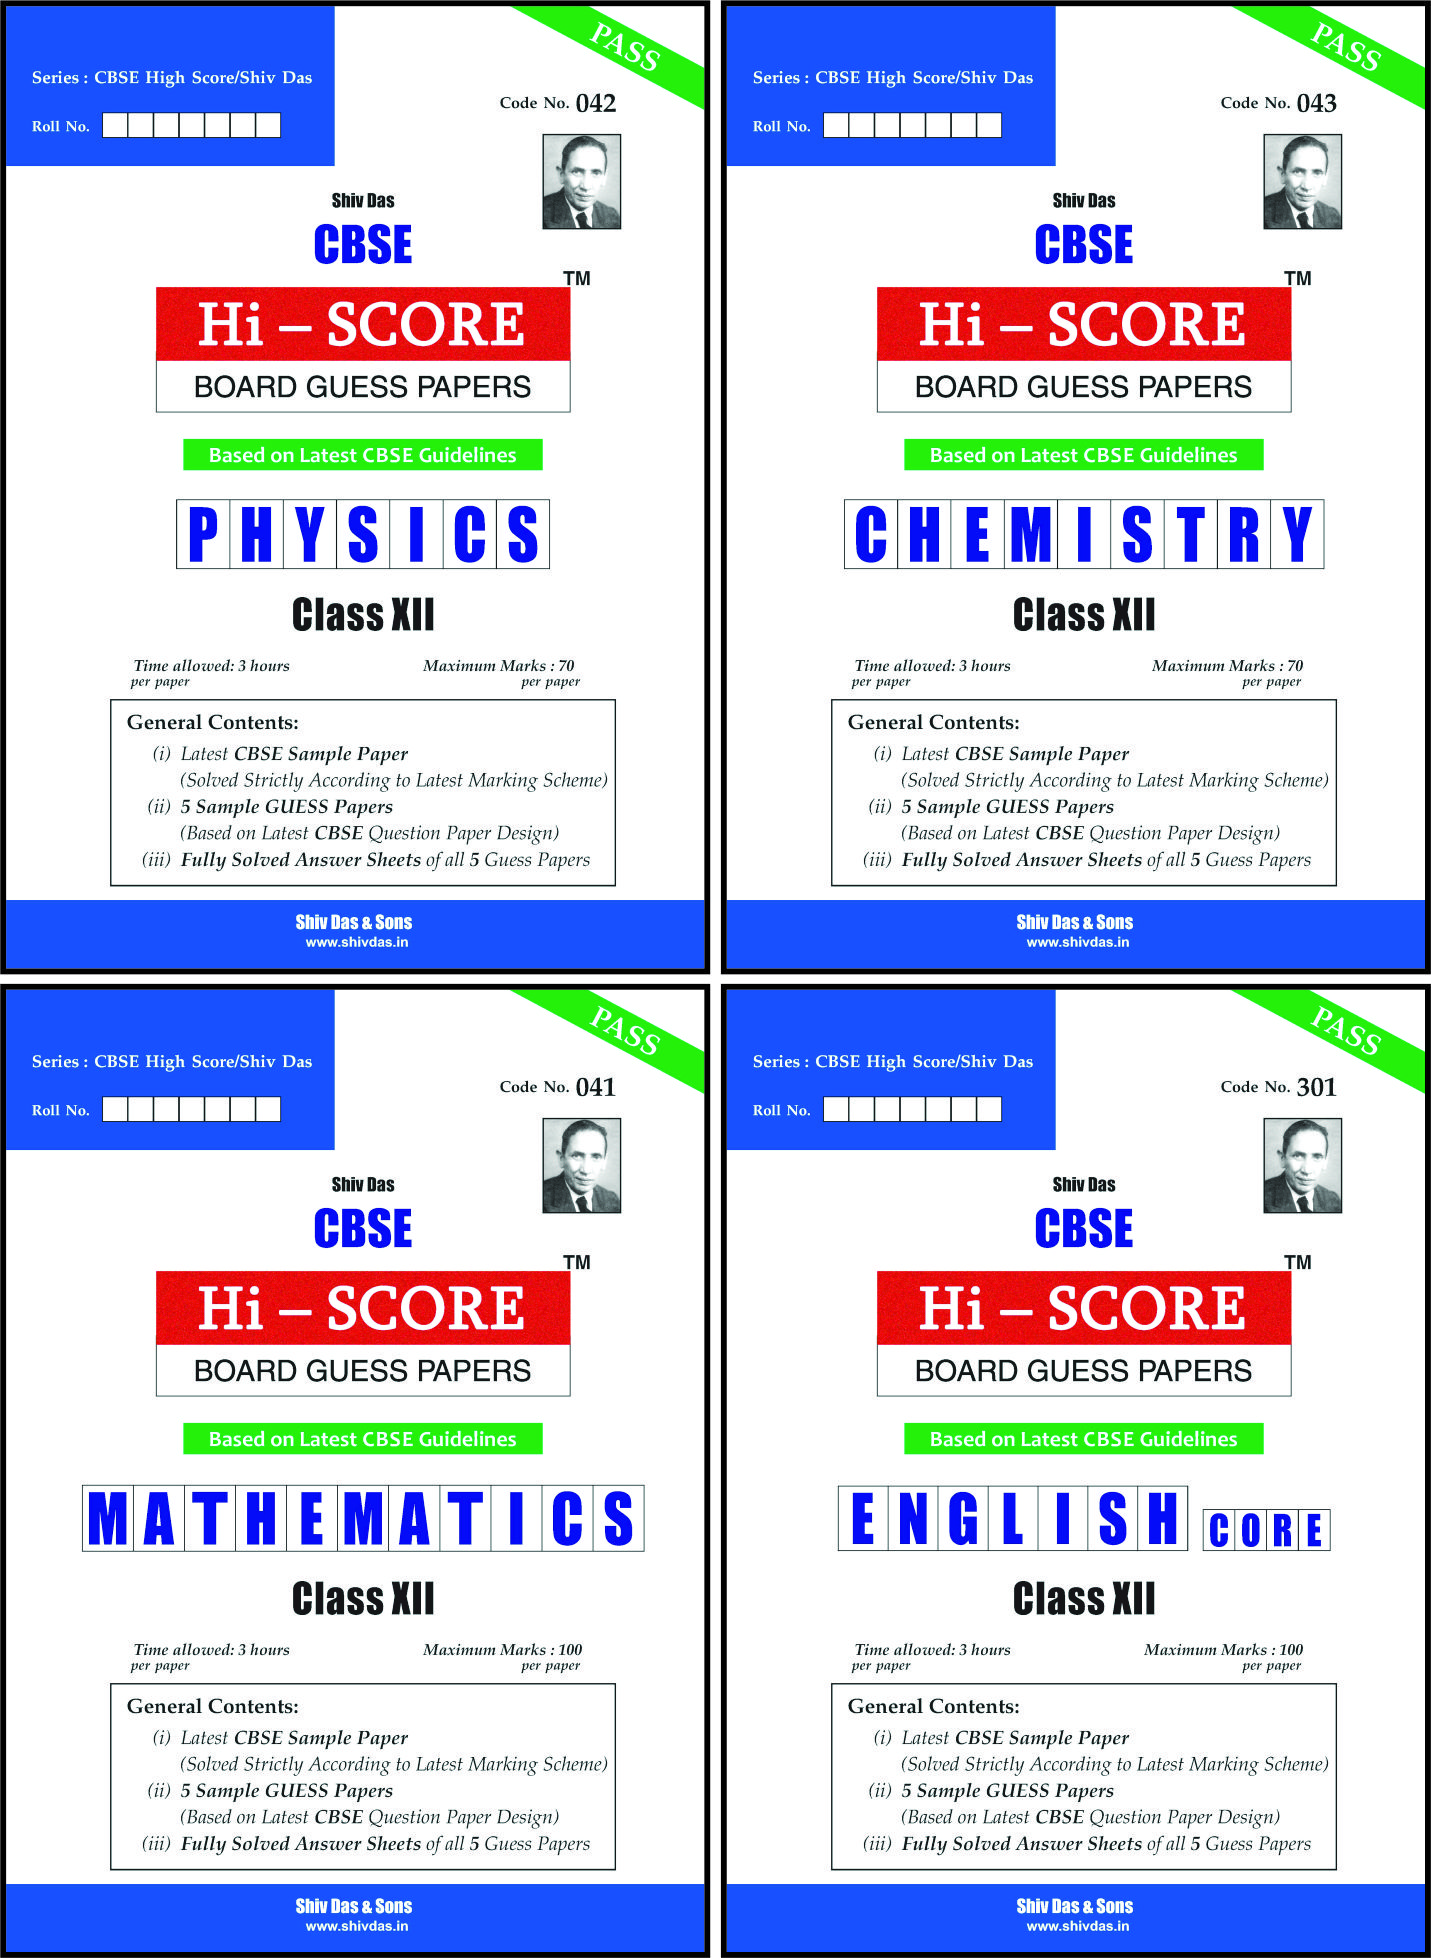 CBSE Hi Score Board Guess Papers Pack of 4 for Class 12 Physics Chemistry Mathematics English